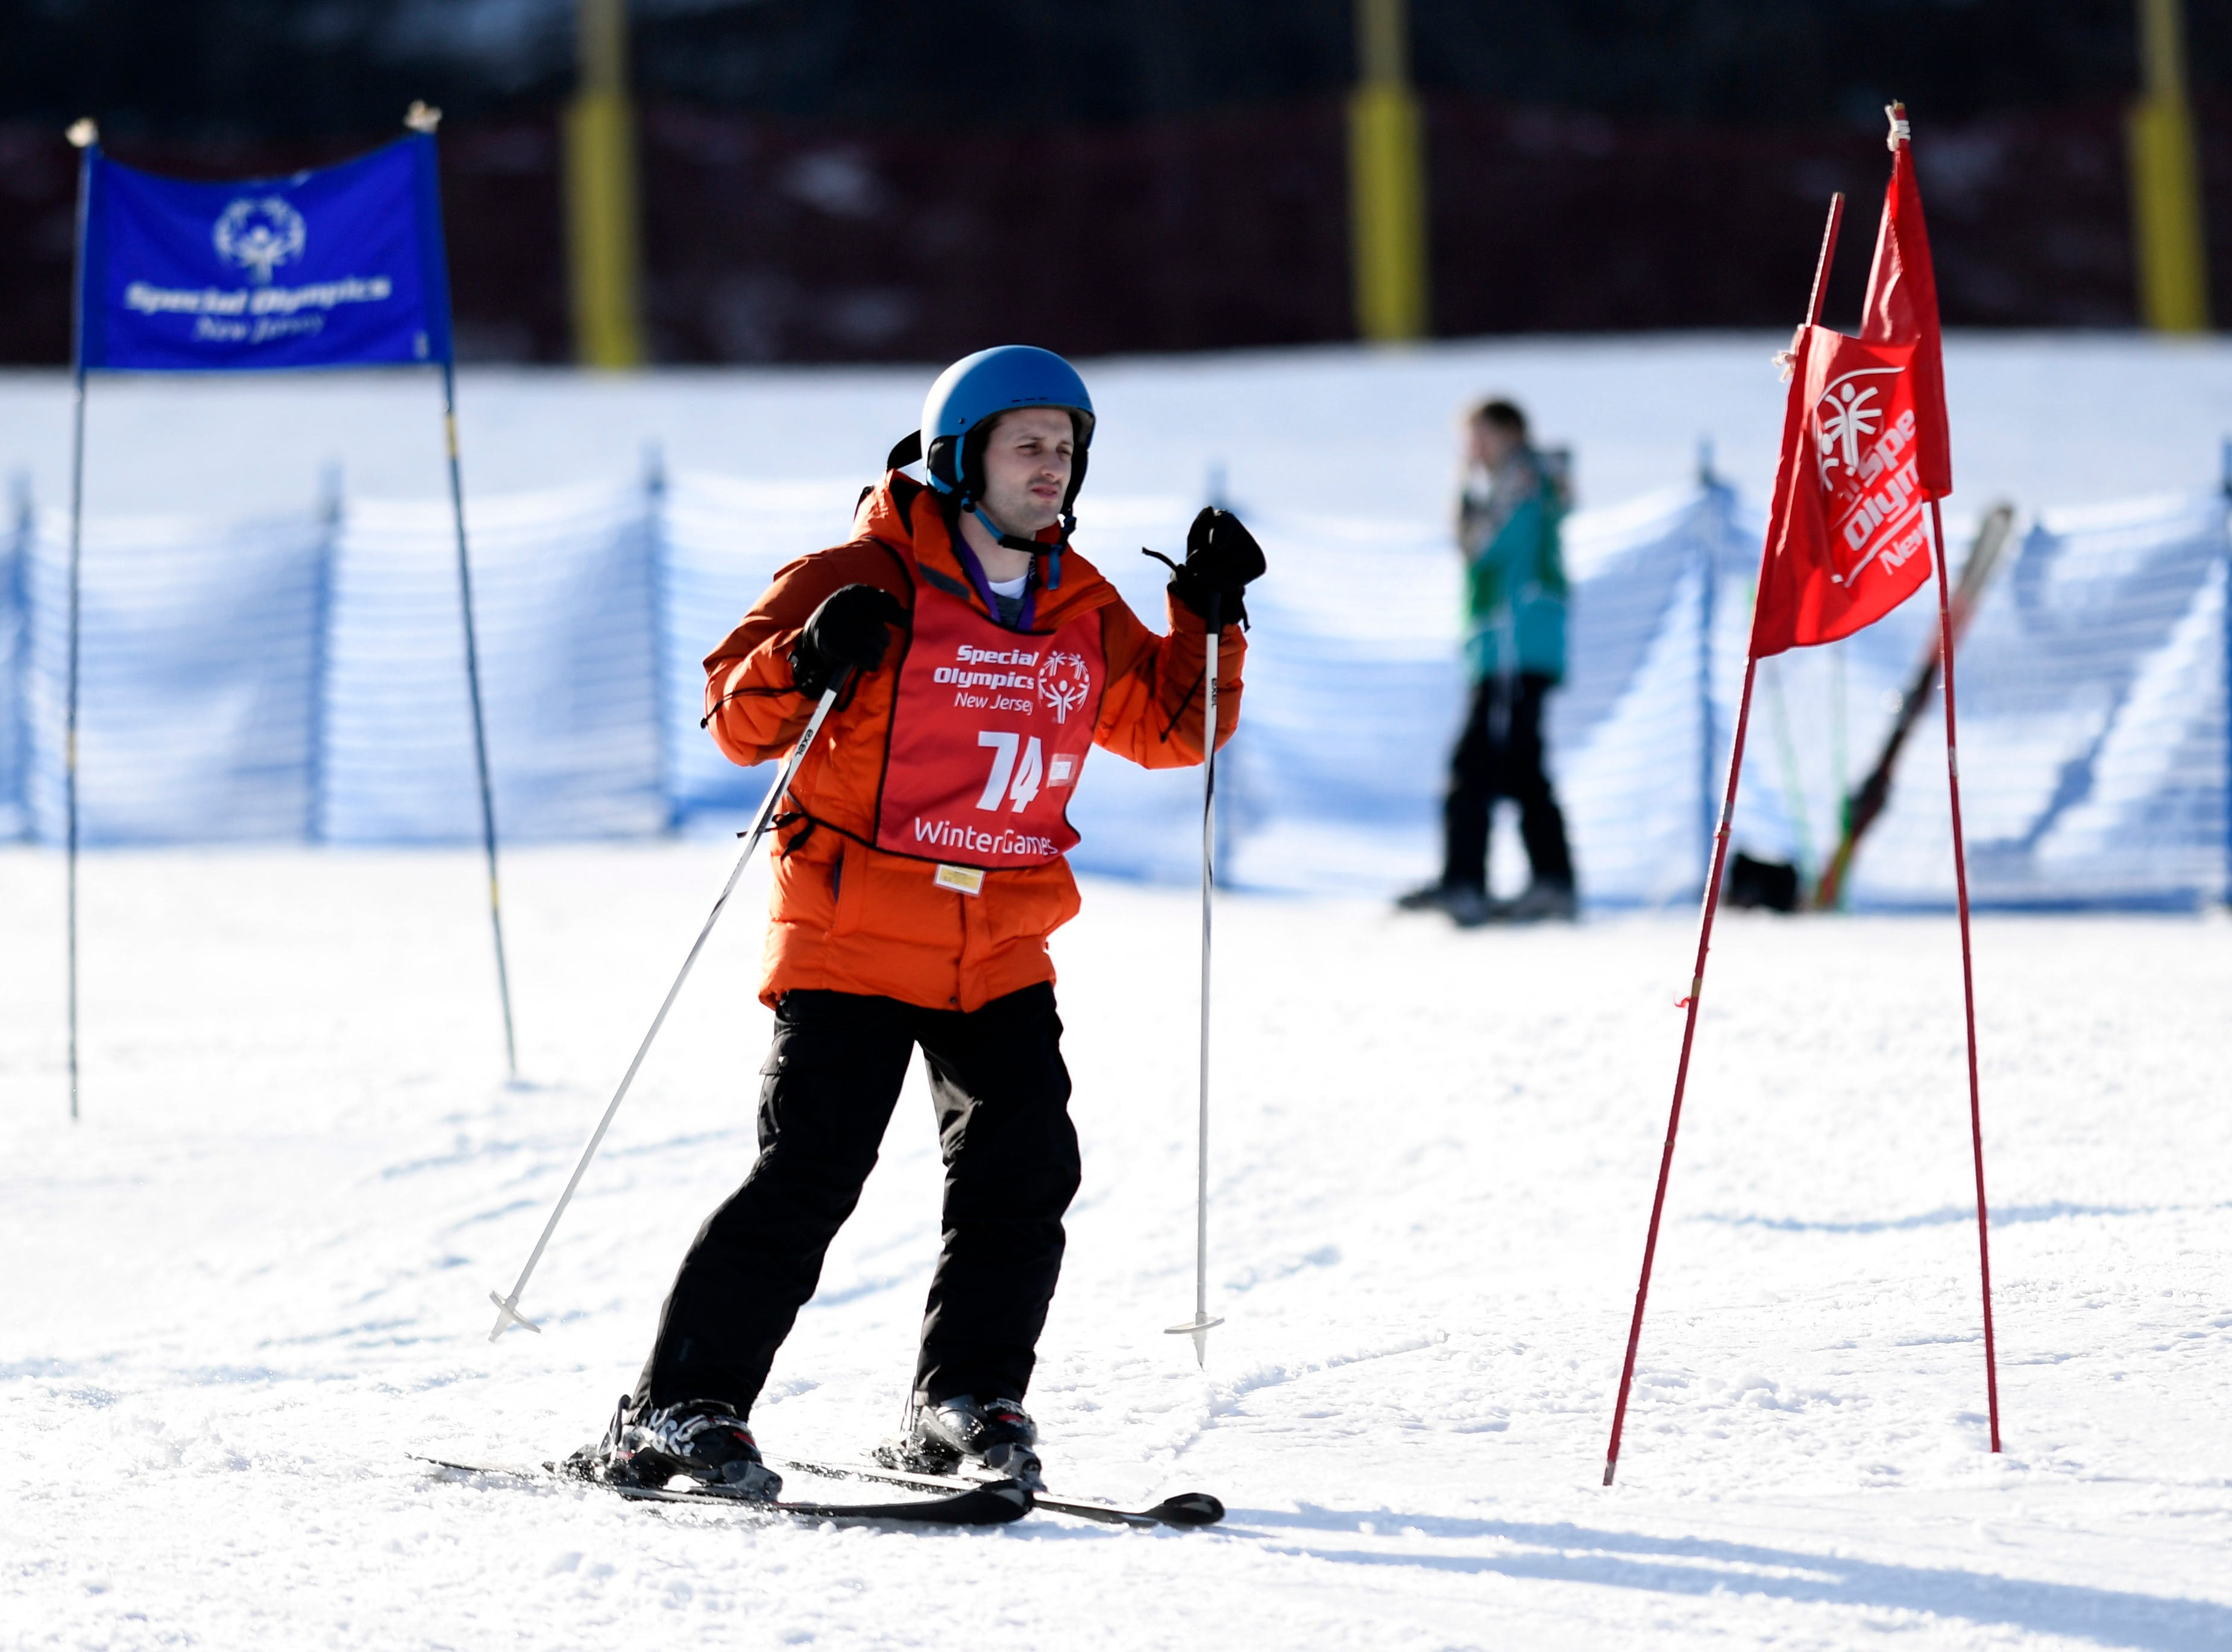 Kevin Valluzzo of East Windsor competes in the giant slalom during the Special Olympics New Jersey 2019 Winter Games on Tuesday, Feb. 5, 2019, in Vernon.